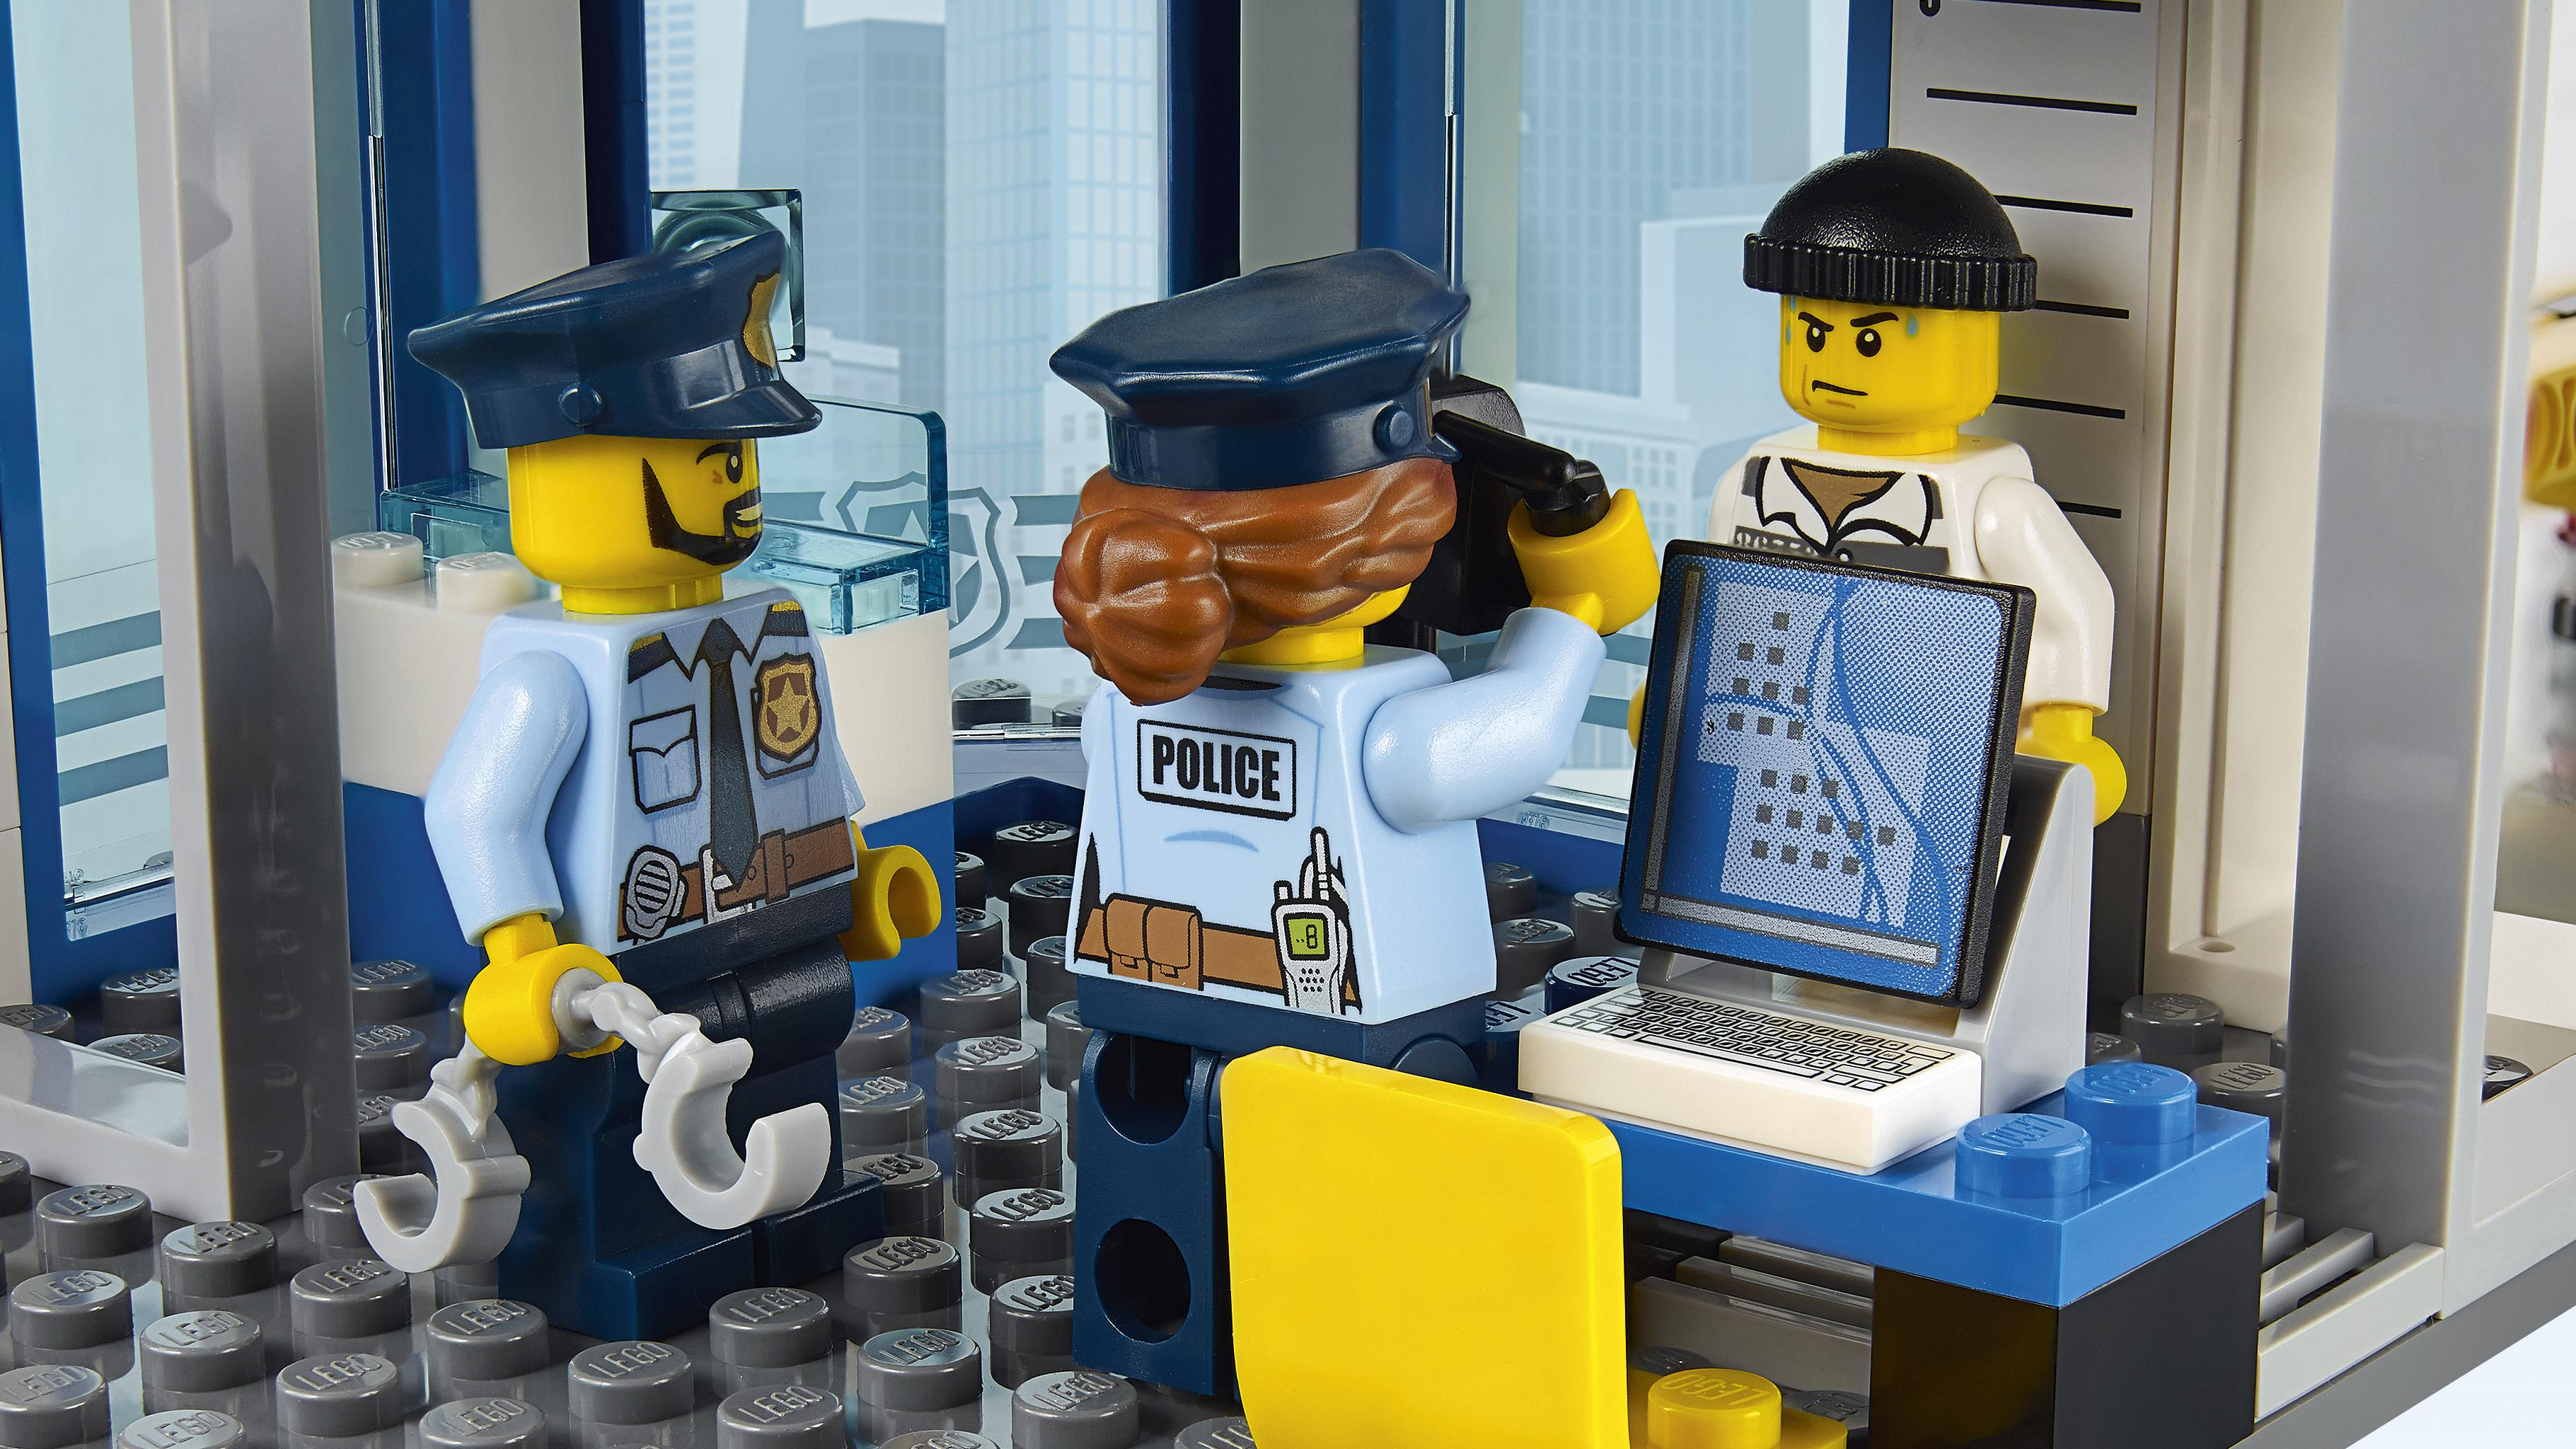 Amazon Com Lego City Police Station 60141 Cool Toy For